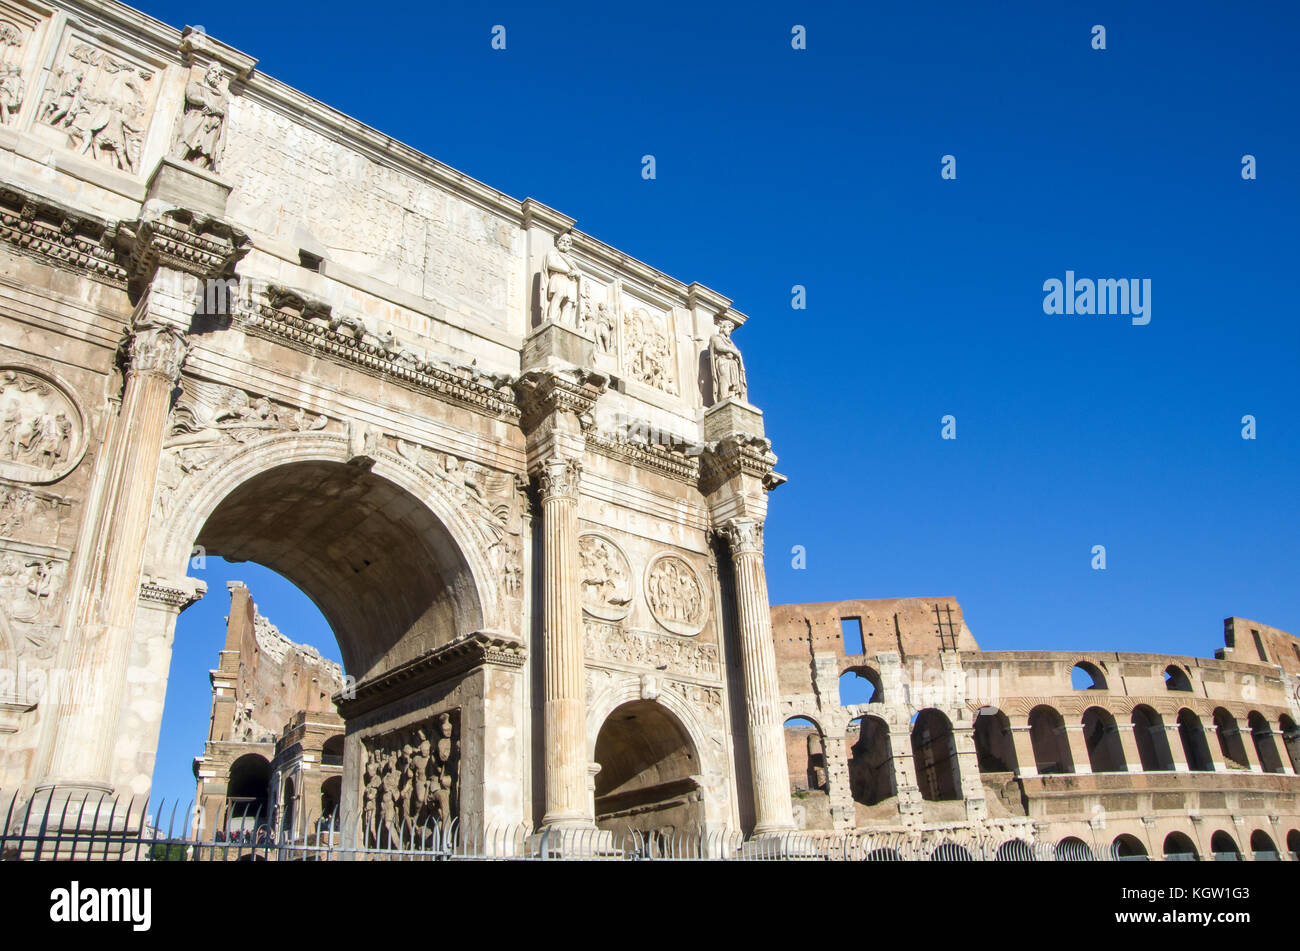 Arch of Constantine with Colosseum in the background - Stock Image